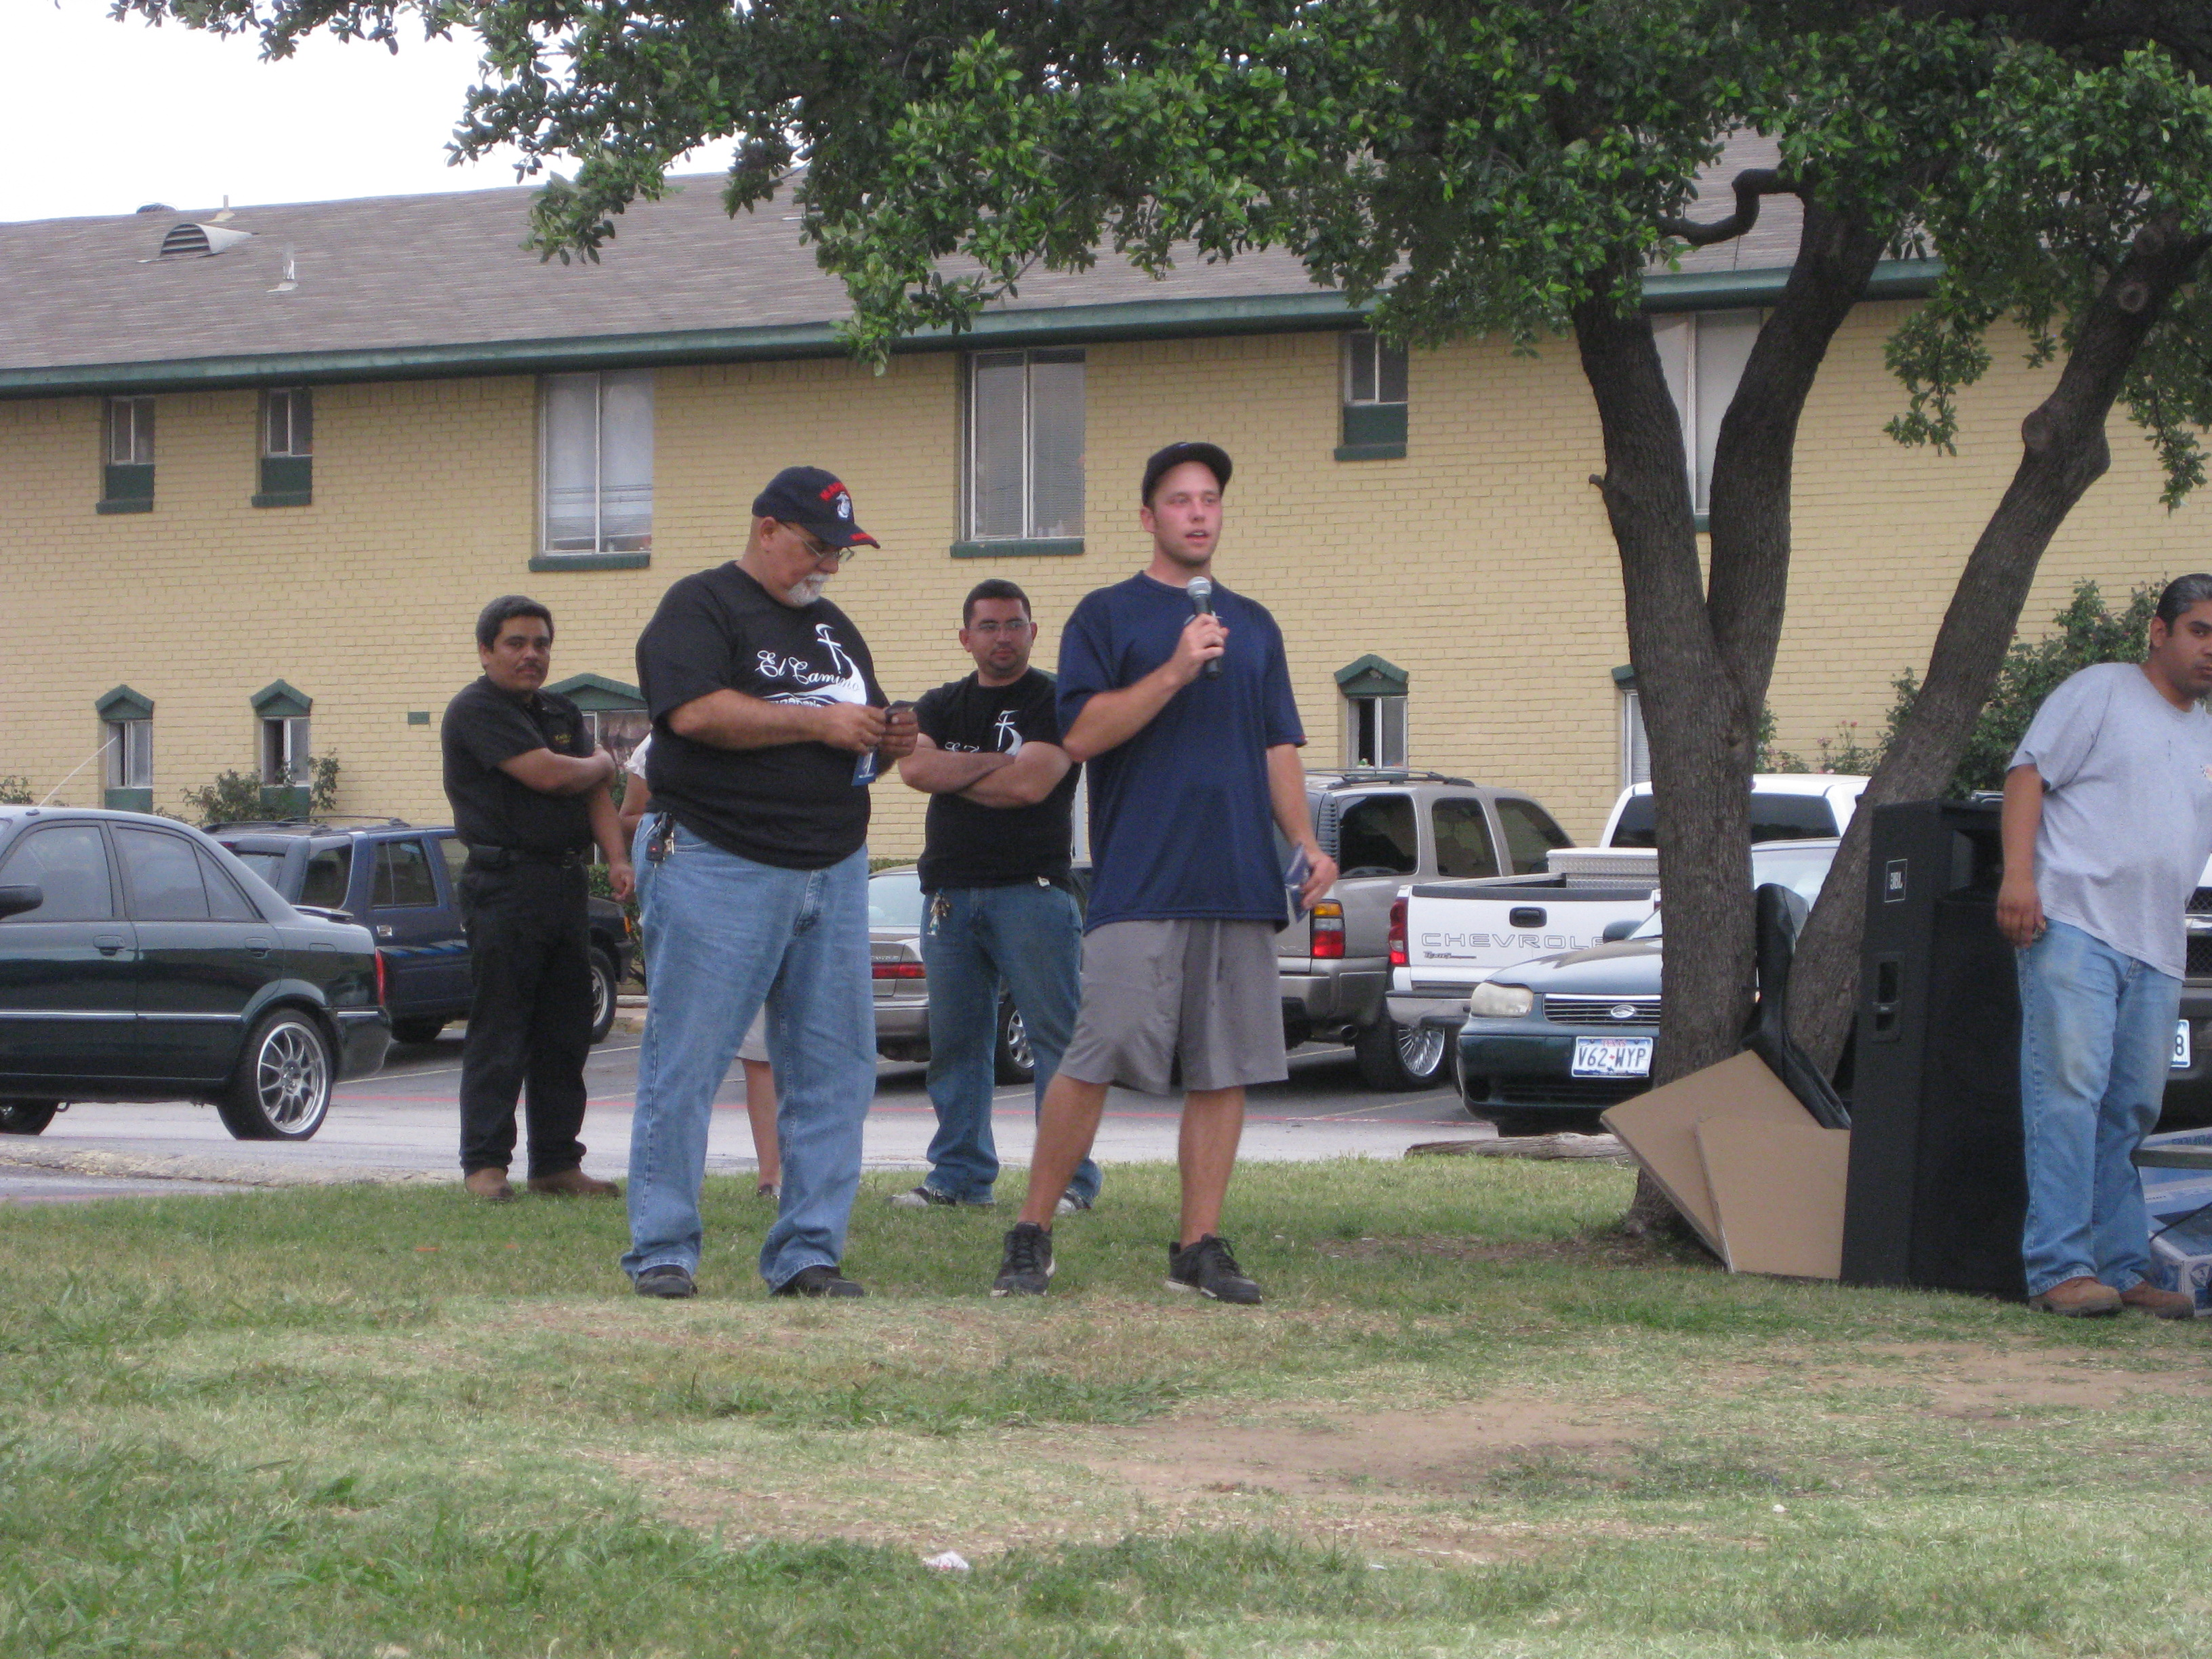 Outreach  with El Camino church in an apartment complex in Dallas area.  One AIA guys shares about who we are and the pastor translates.  Also one of our guys shared his testimony as well.